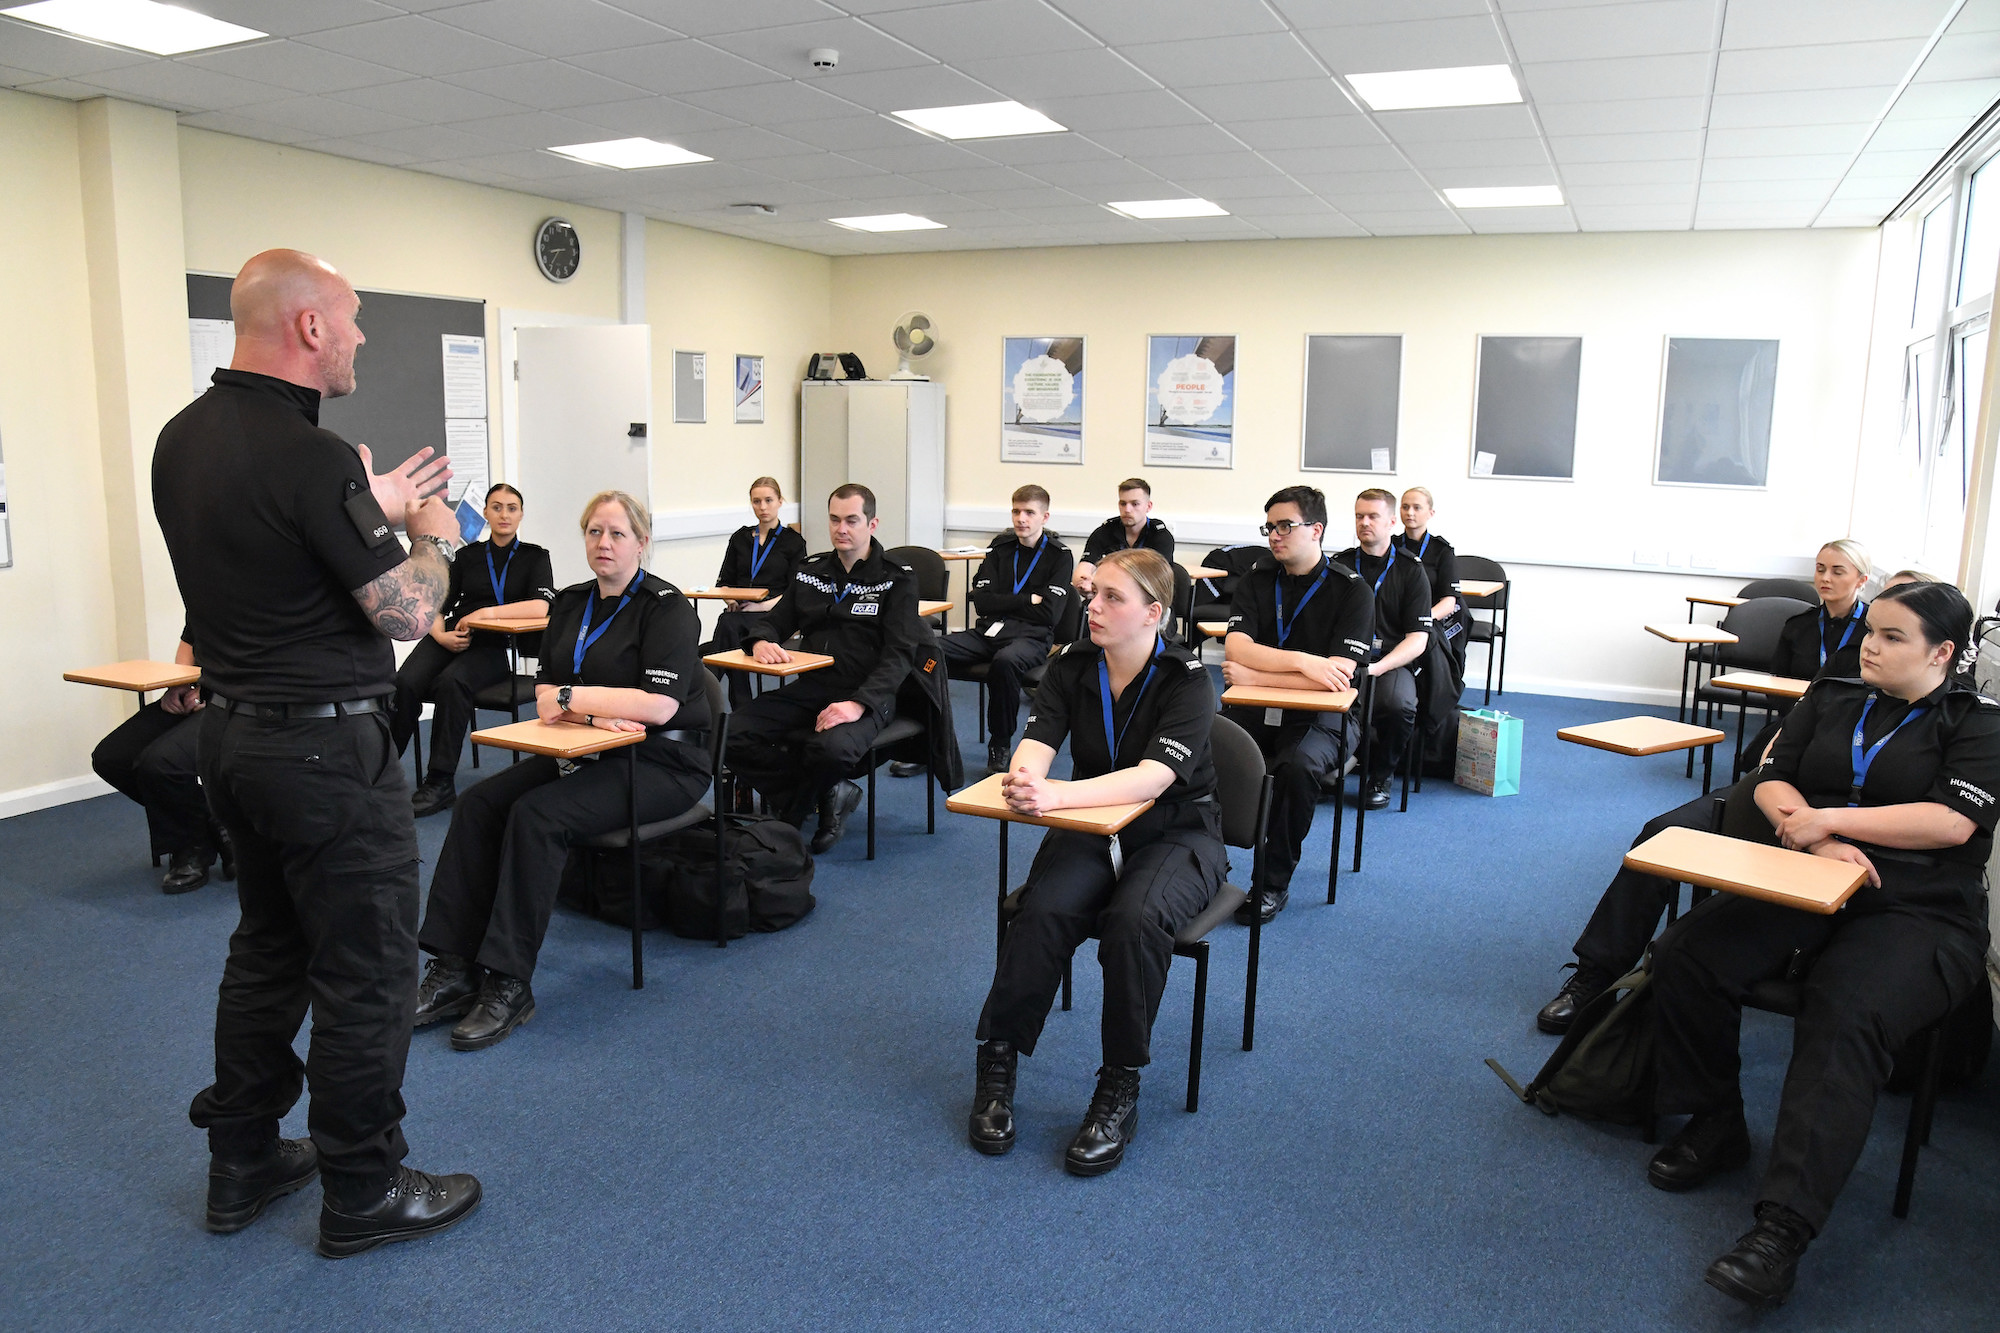 Special constables in a training classroom